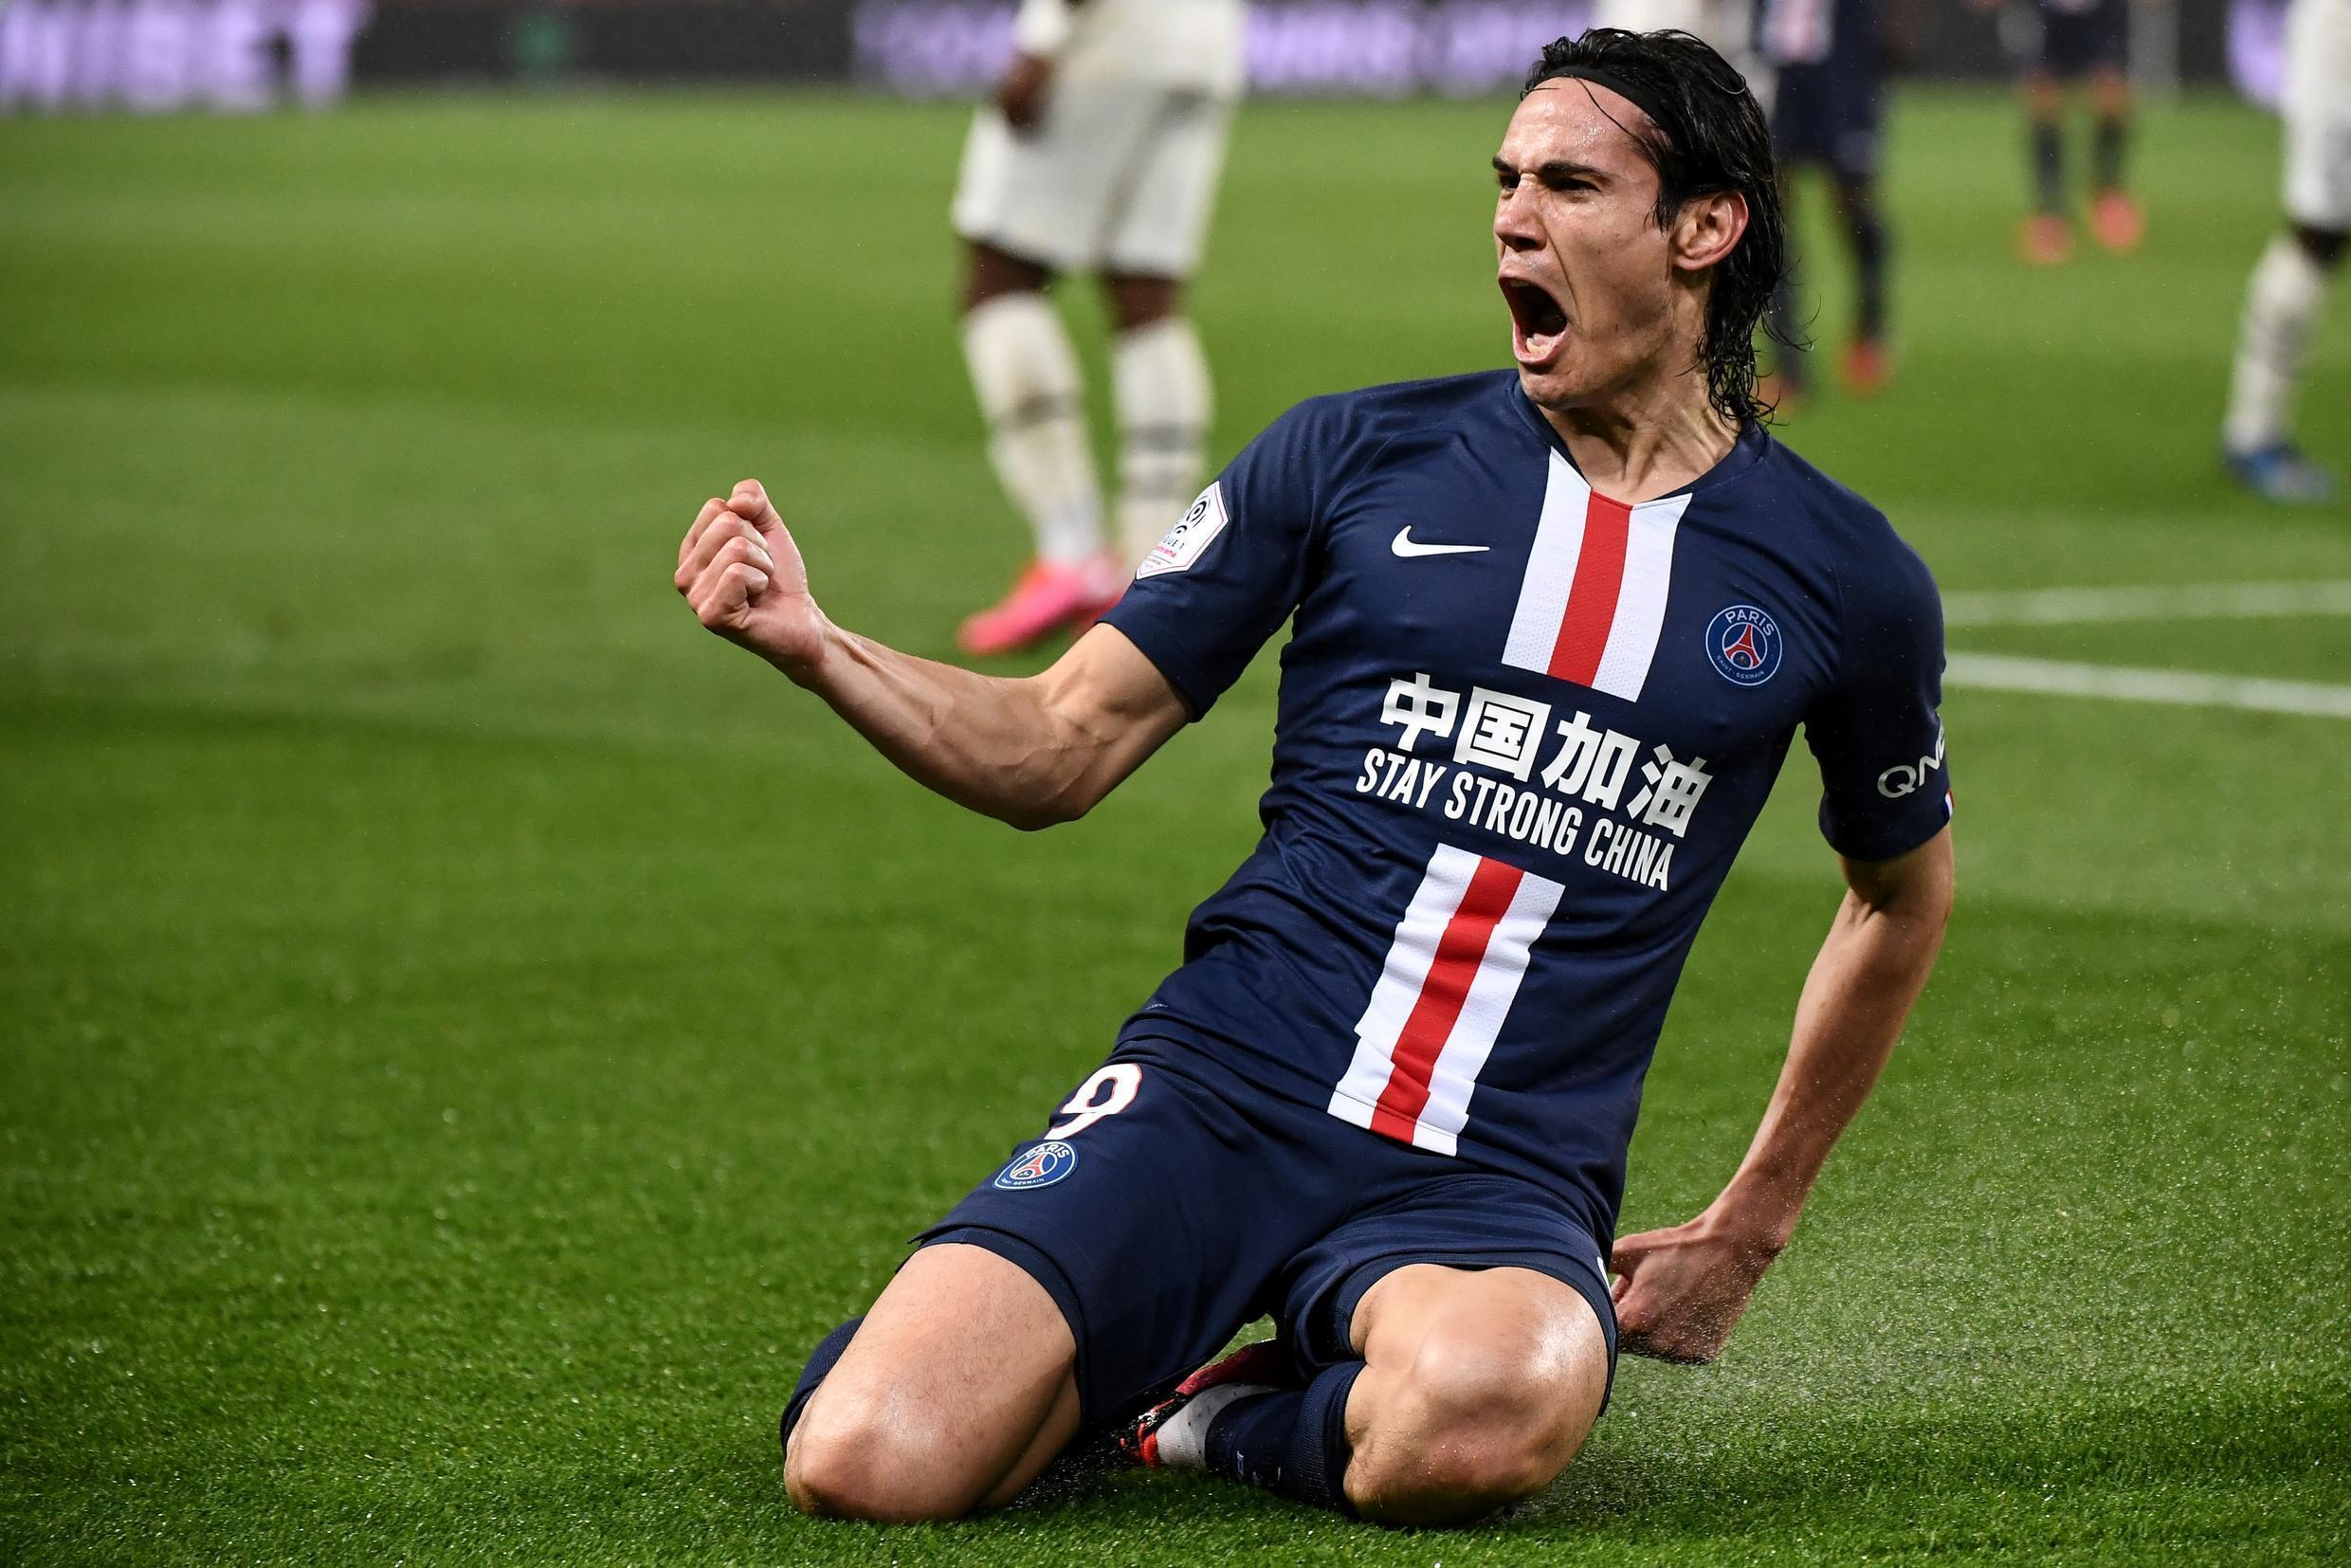 Edinson Cavani has joined Manchester United on a one-year deal